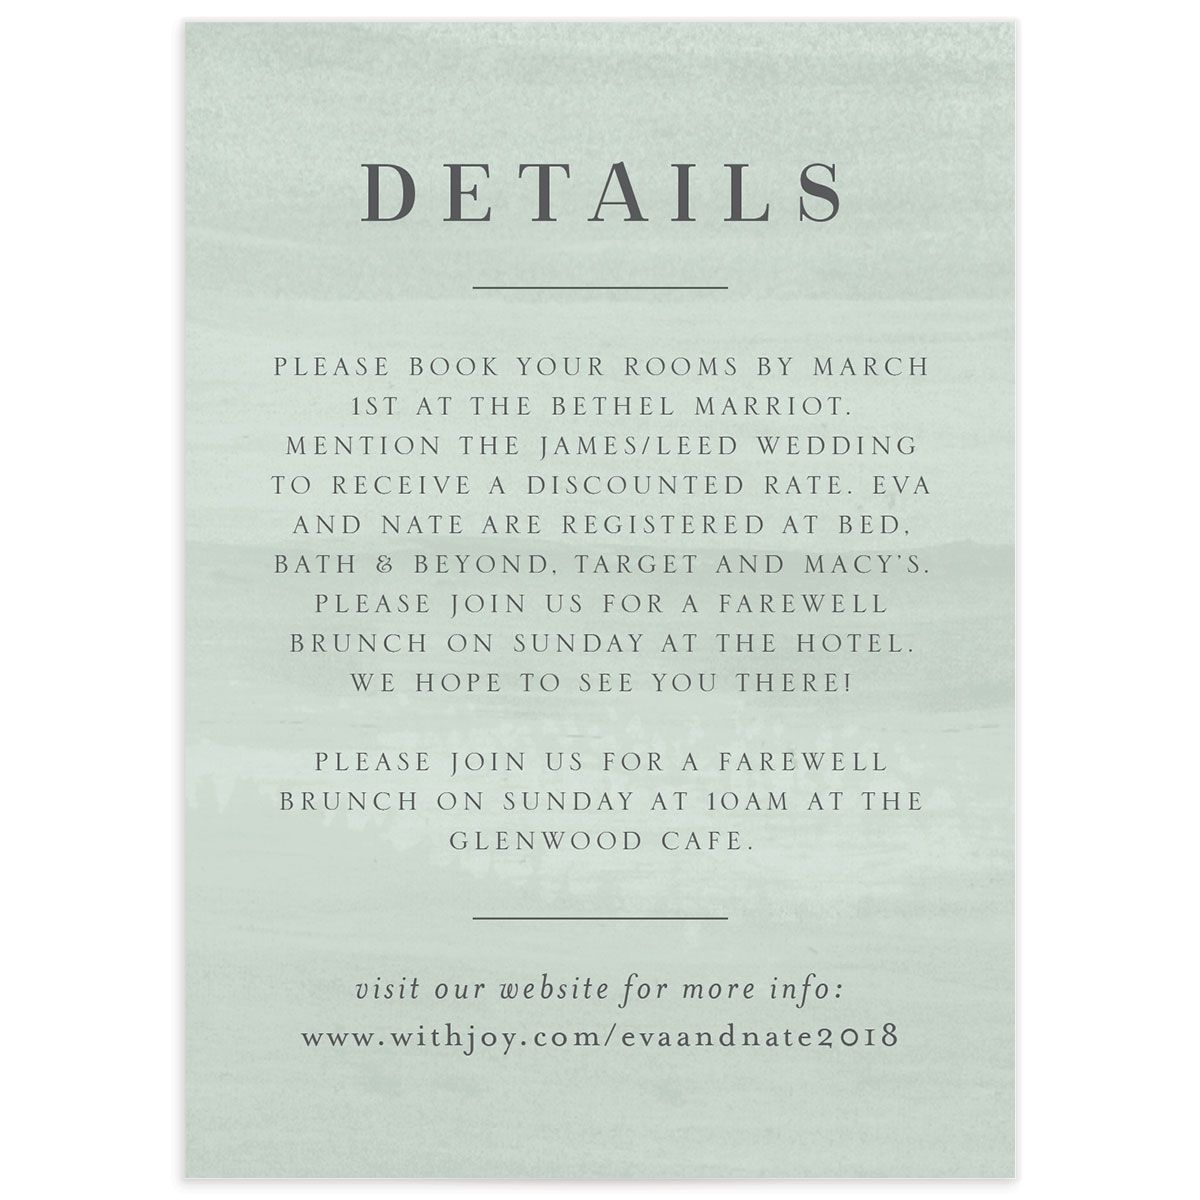 wild wreath wedding details card in green